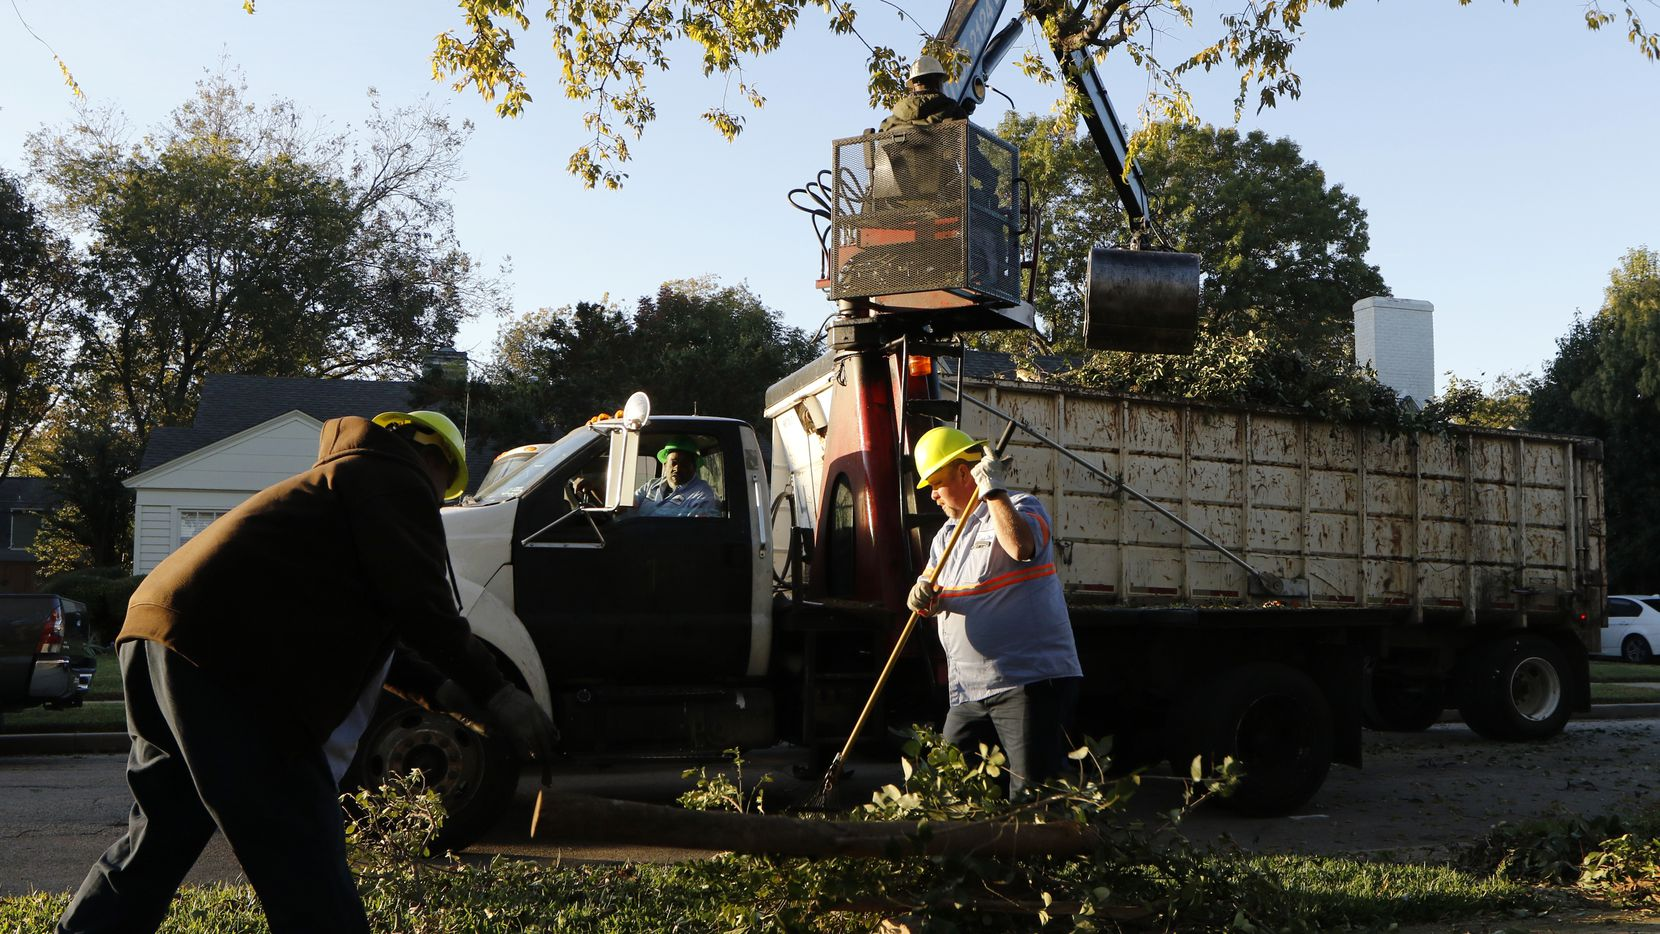 Dallas Sanitation Services employees Gustave Nealy, left, Darrell Wortham, in cab, Atmos Matthews, Rotoboom Operator, top, and Daniel Crane pick up bulk trash in the 6200 block of Revere Place in east Dallas on Monday, November 21, 2016. The City of Dallas is considering limiting its bulk trash program. Dallas collects double the amount of bulk trash of any other major Texas city and currently does not have and limitations to the amount households can leave out for pickup, but that could change.